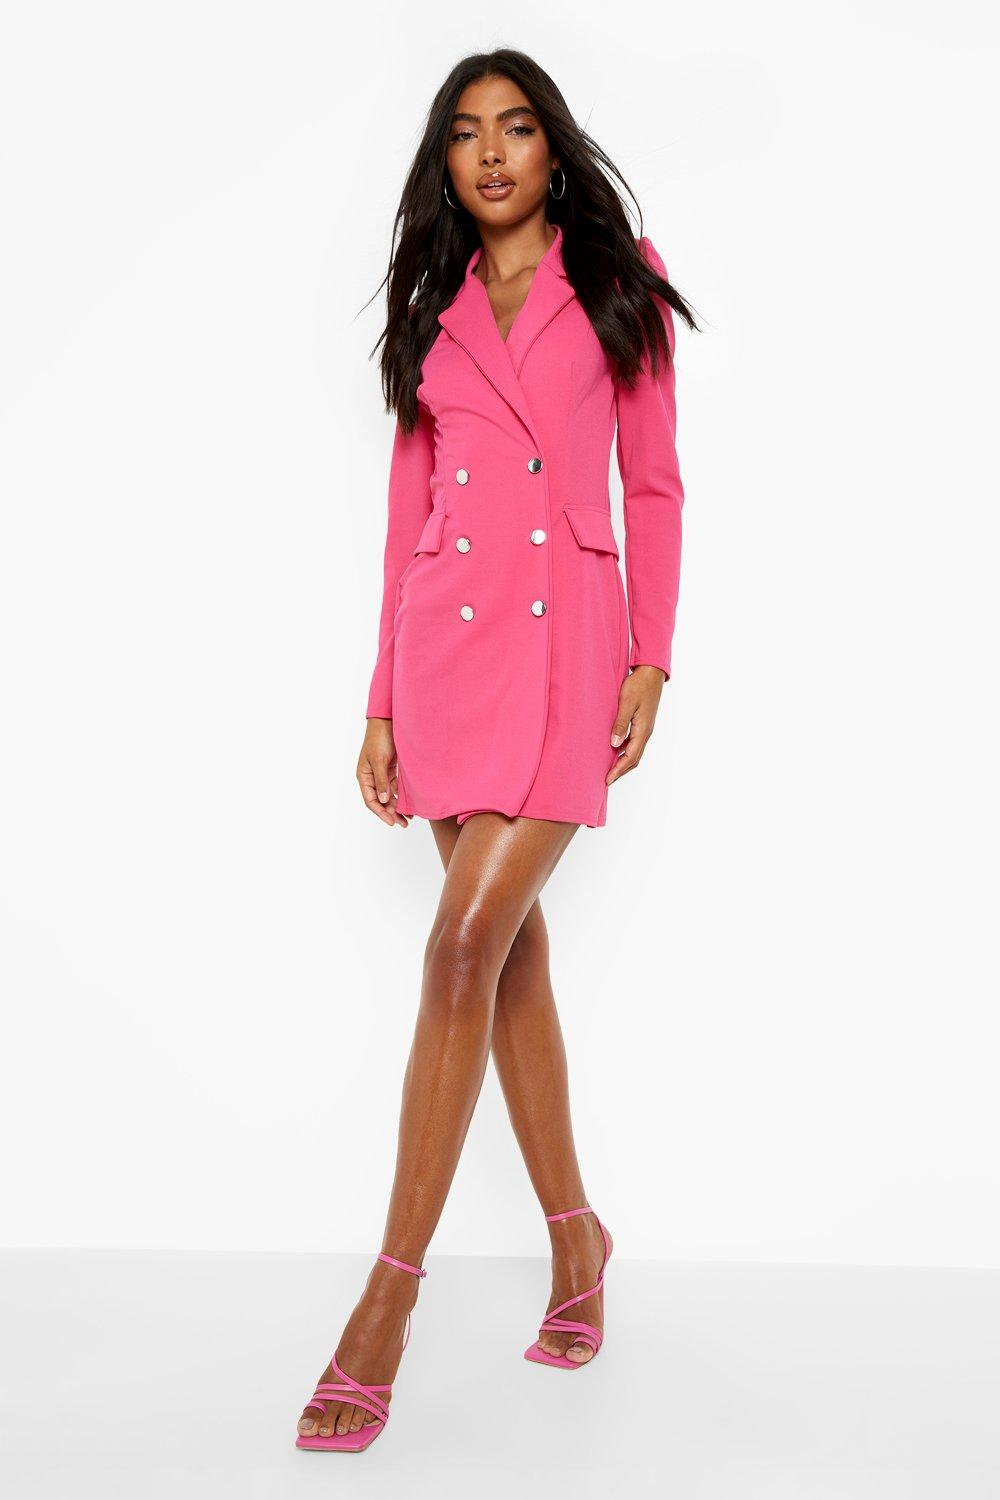 90s Clothing Outfits You Can Buy Now Womens Tall Puff Sleeve Blazer Dress - Pink - 14 $24.00 AT vintagedancer.com